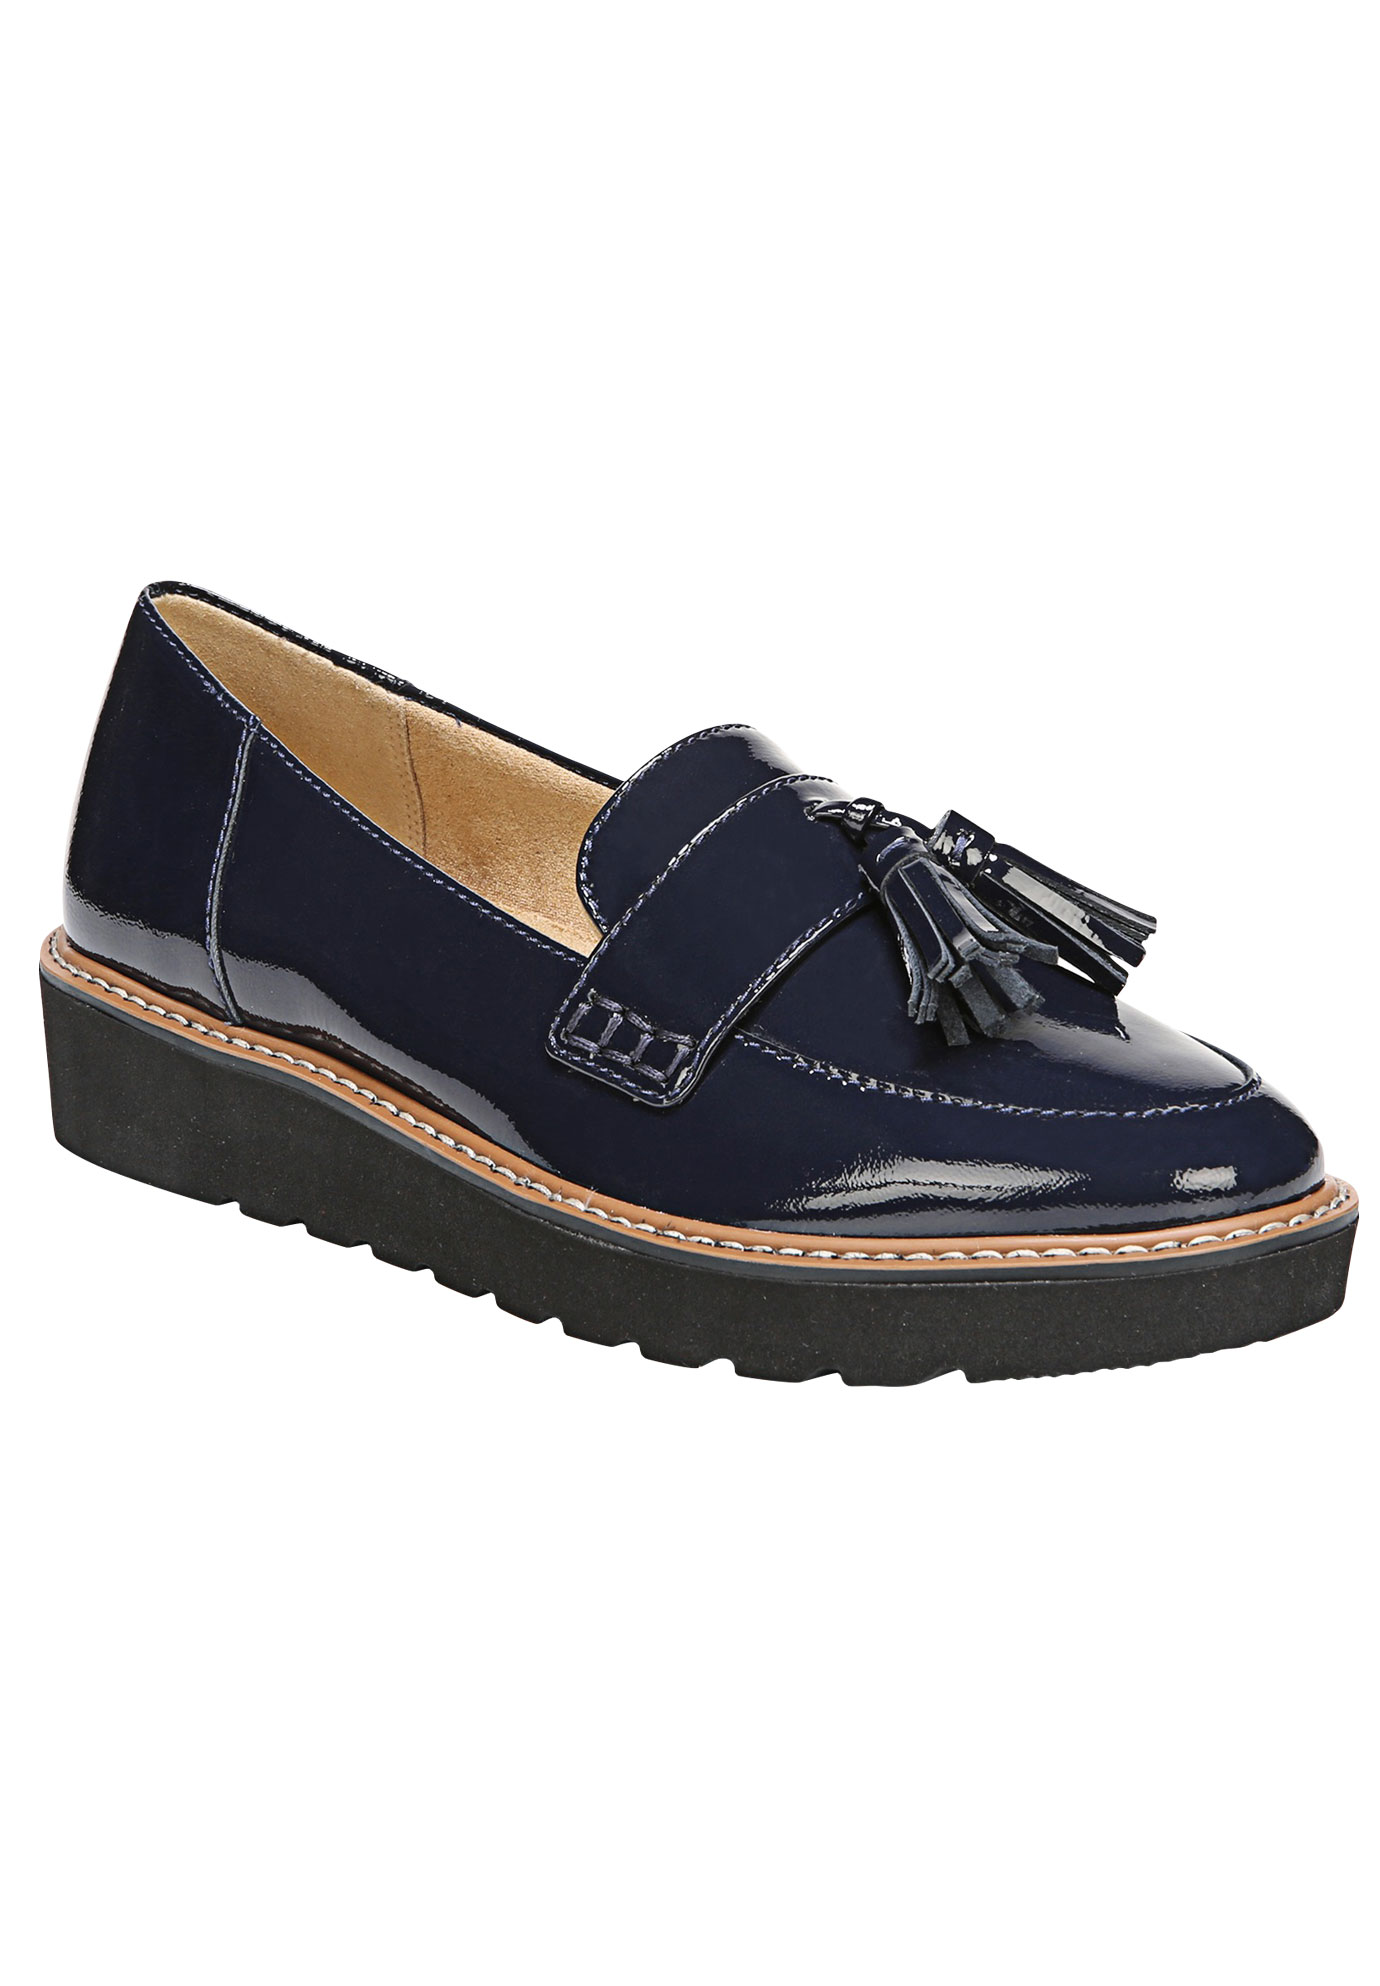 August Loafers by Naturalizer®,